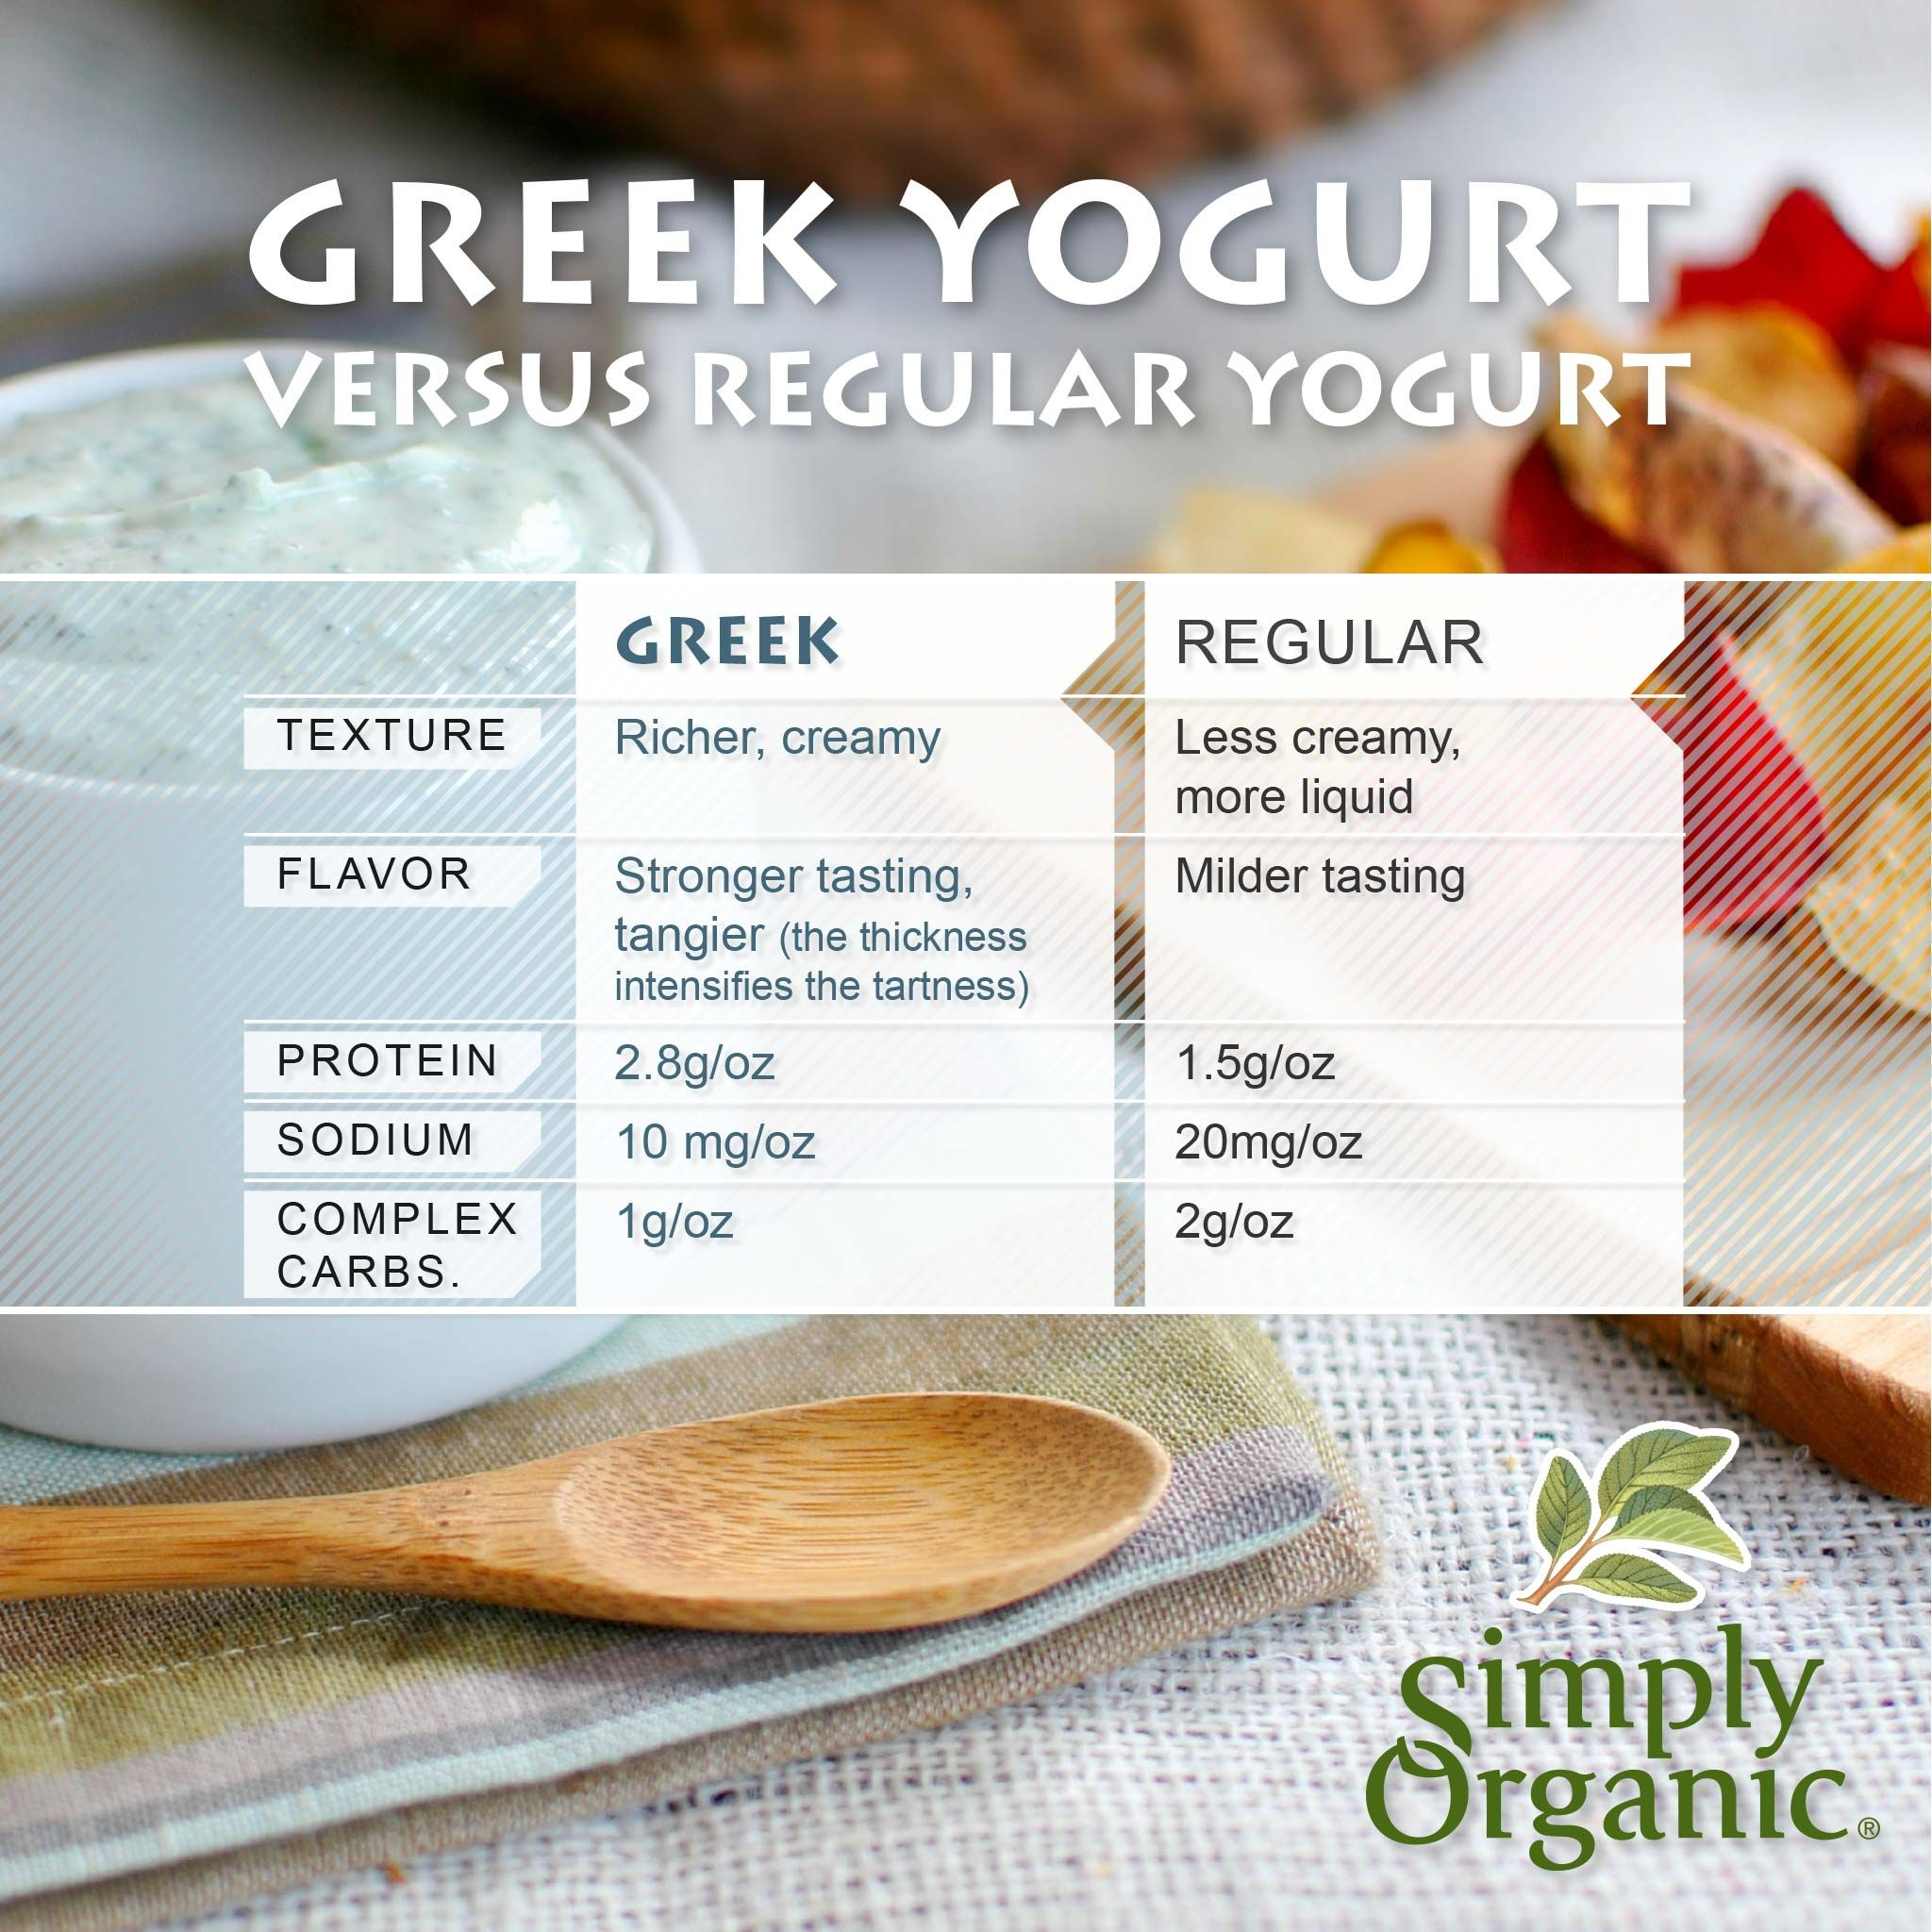 Watch Greek Yogurt: The Superfoods Health Benefits video